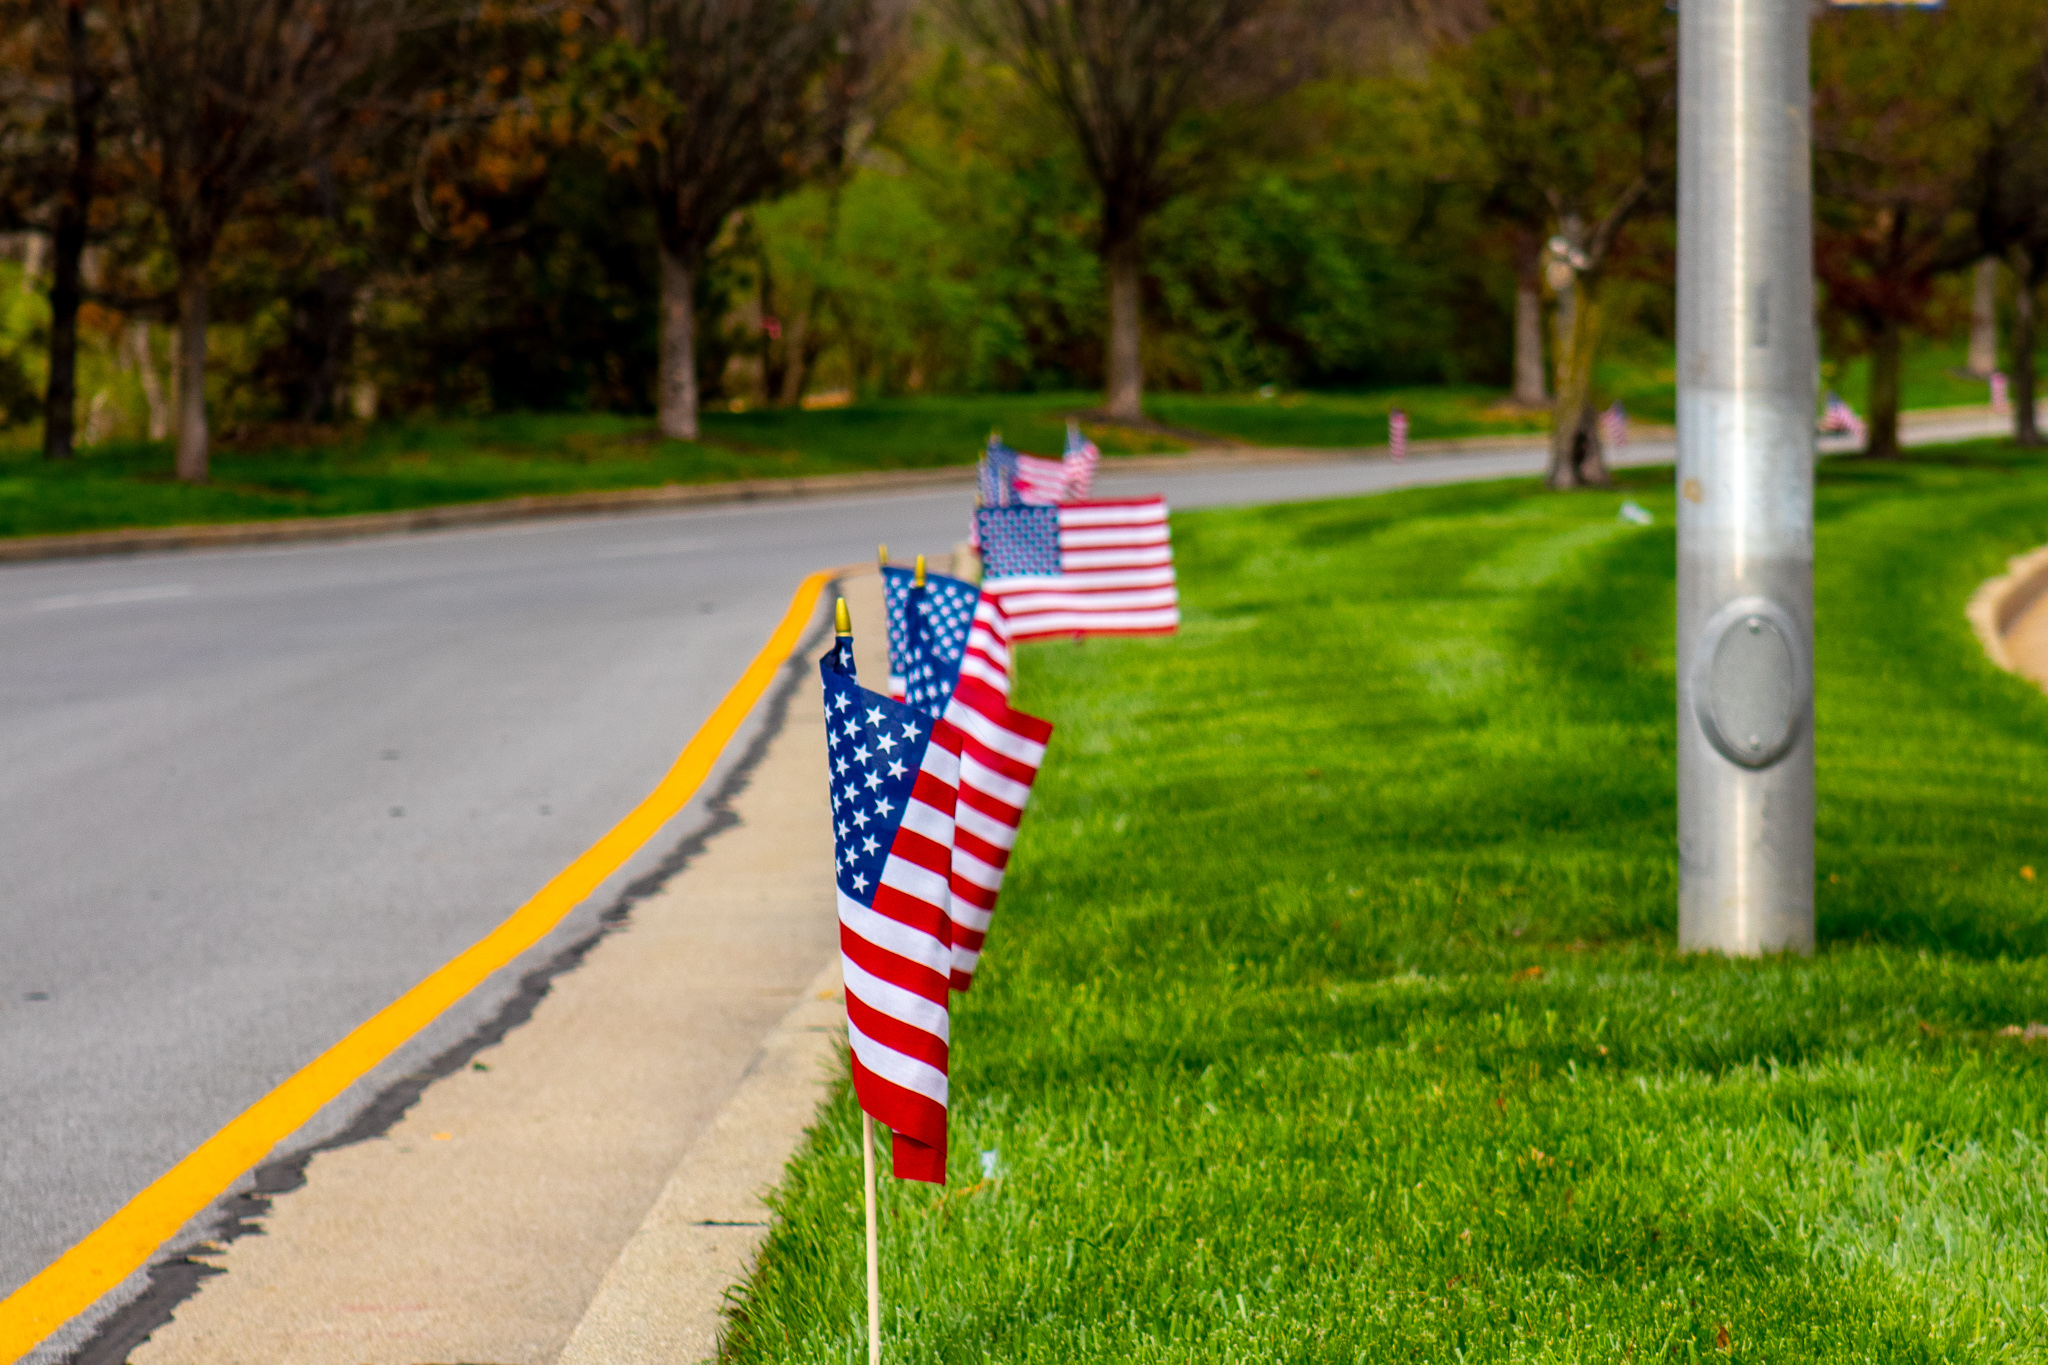 American flags line the side of a road